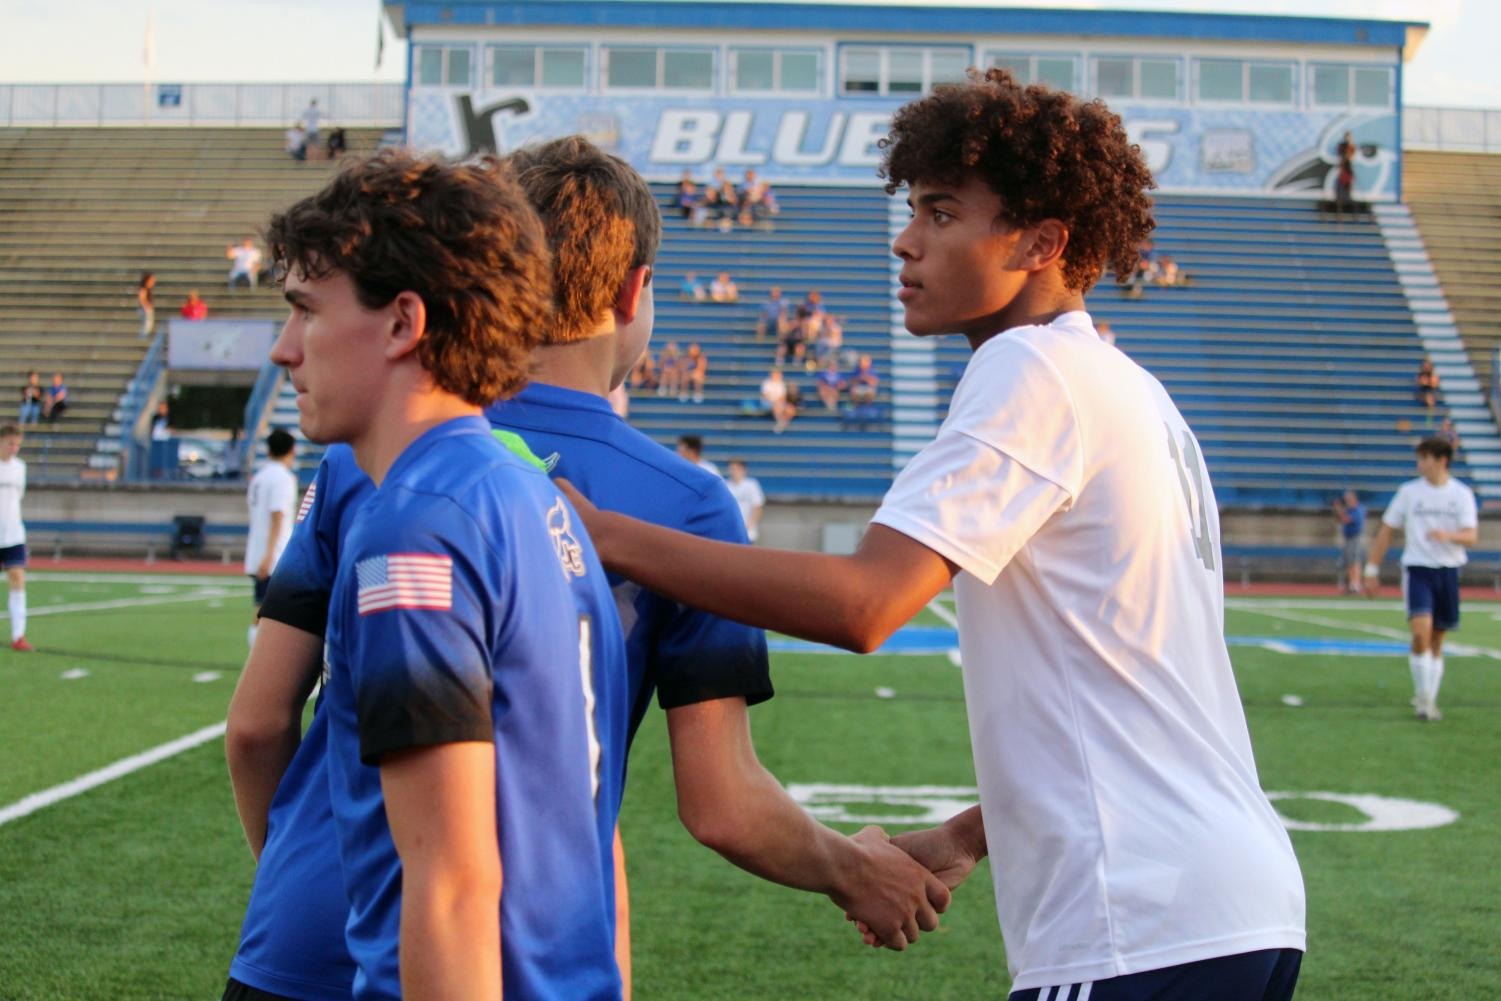 Junior Gabe Effiong shakes hands with Junction City team players. Effiong scored the seventh goal -- his first of his Varisty career -- on Thursday. Manhattan High beat J.C. 10-0 with 30 minutes till game.